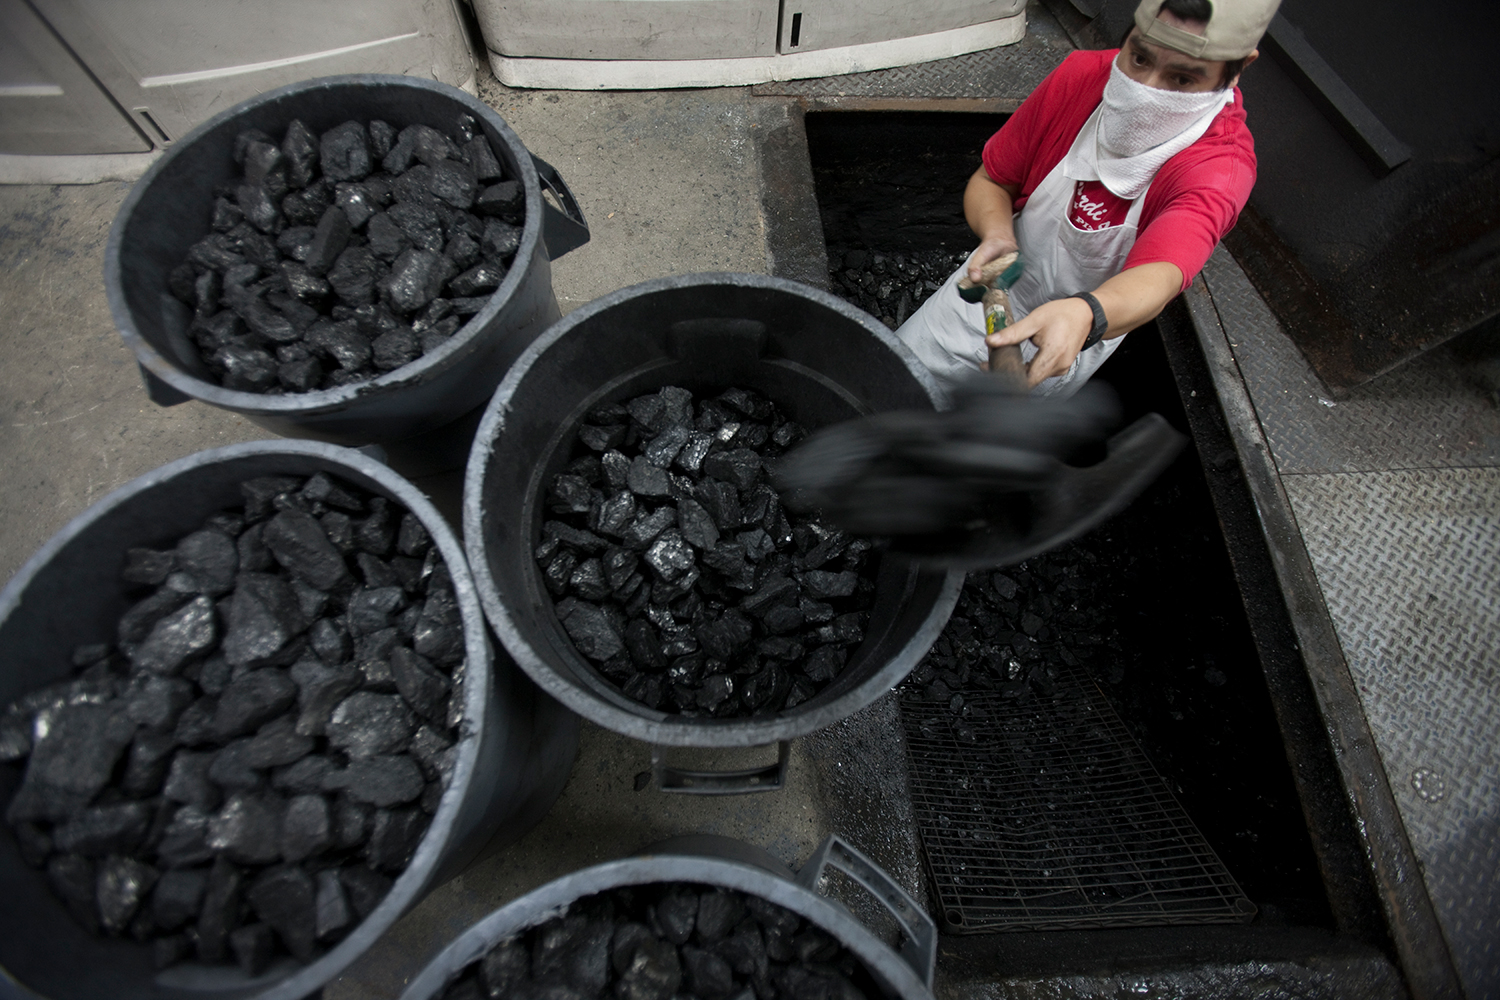 According to Brescio, Lombardi's goes through about 1,000 pounds of anthracite coal PER DAY!